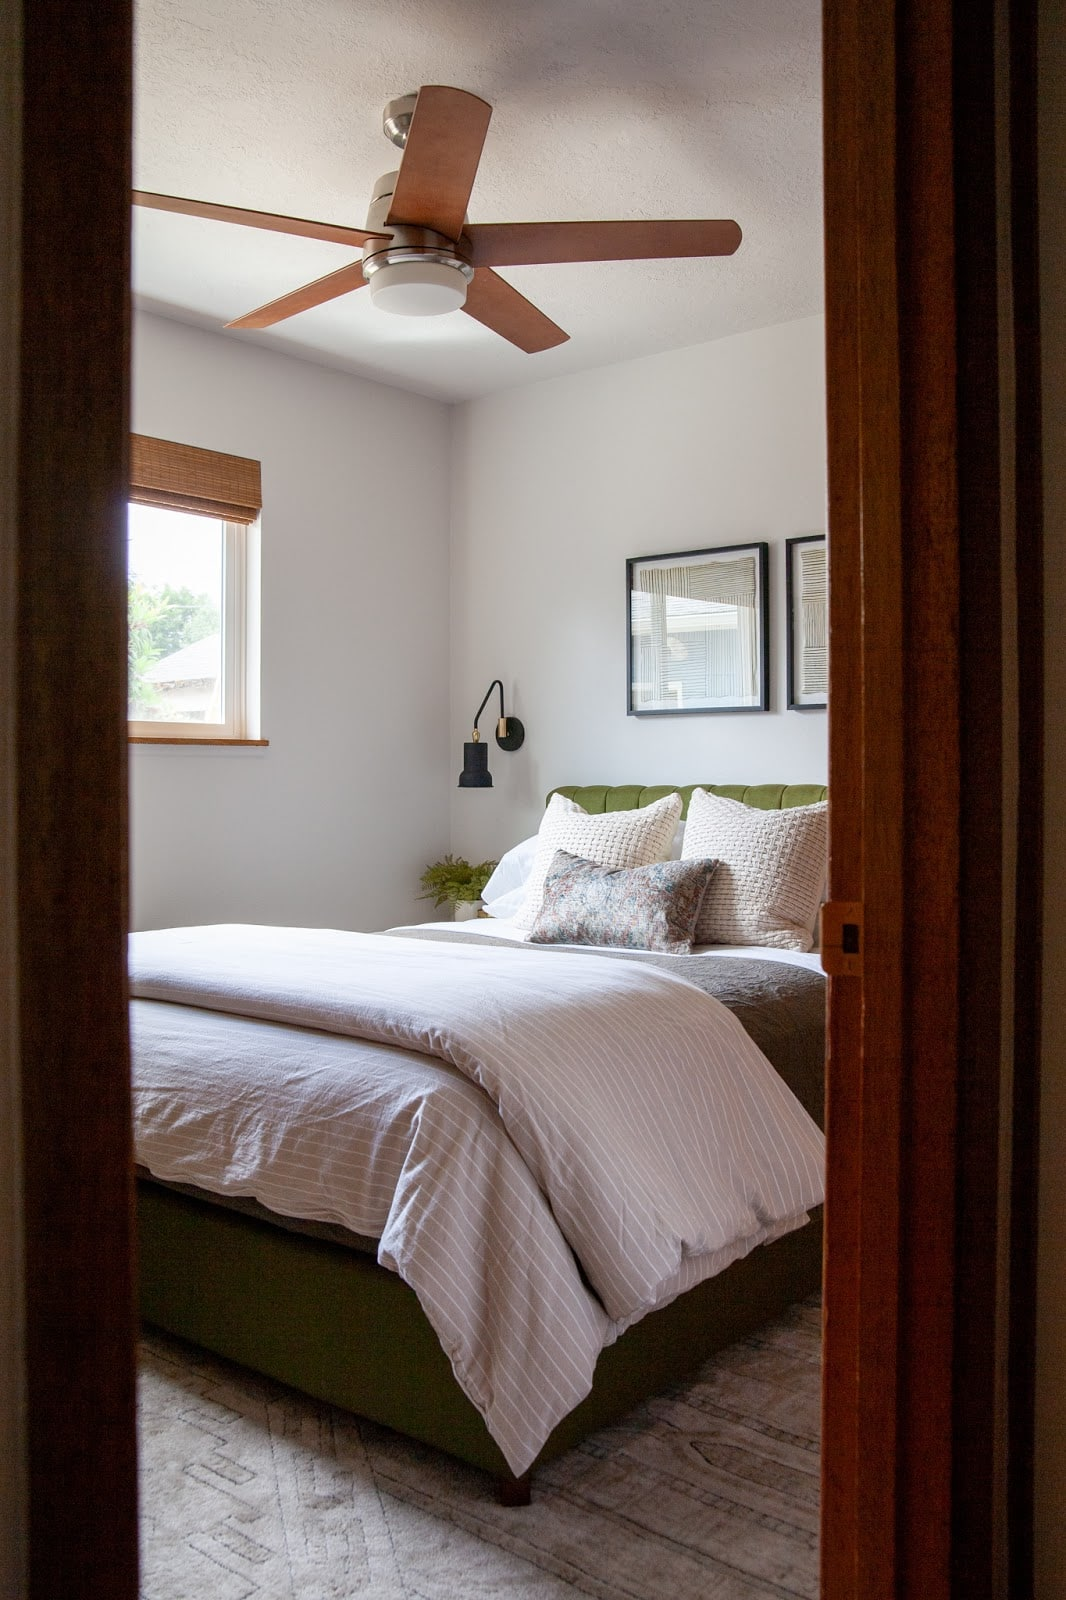 Guest room with green headboard, neutral bedding and fan